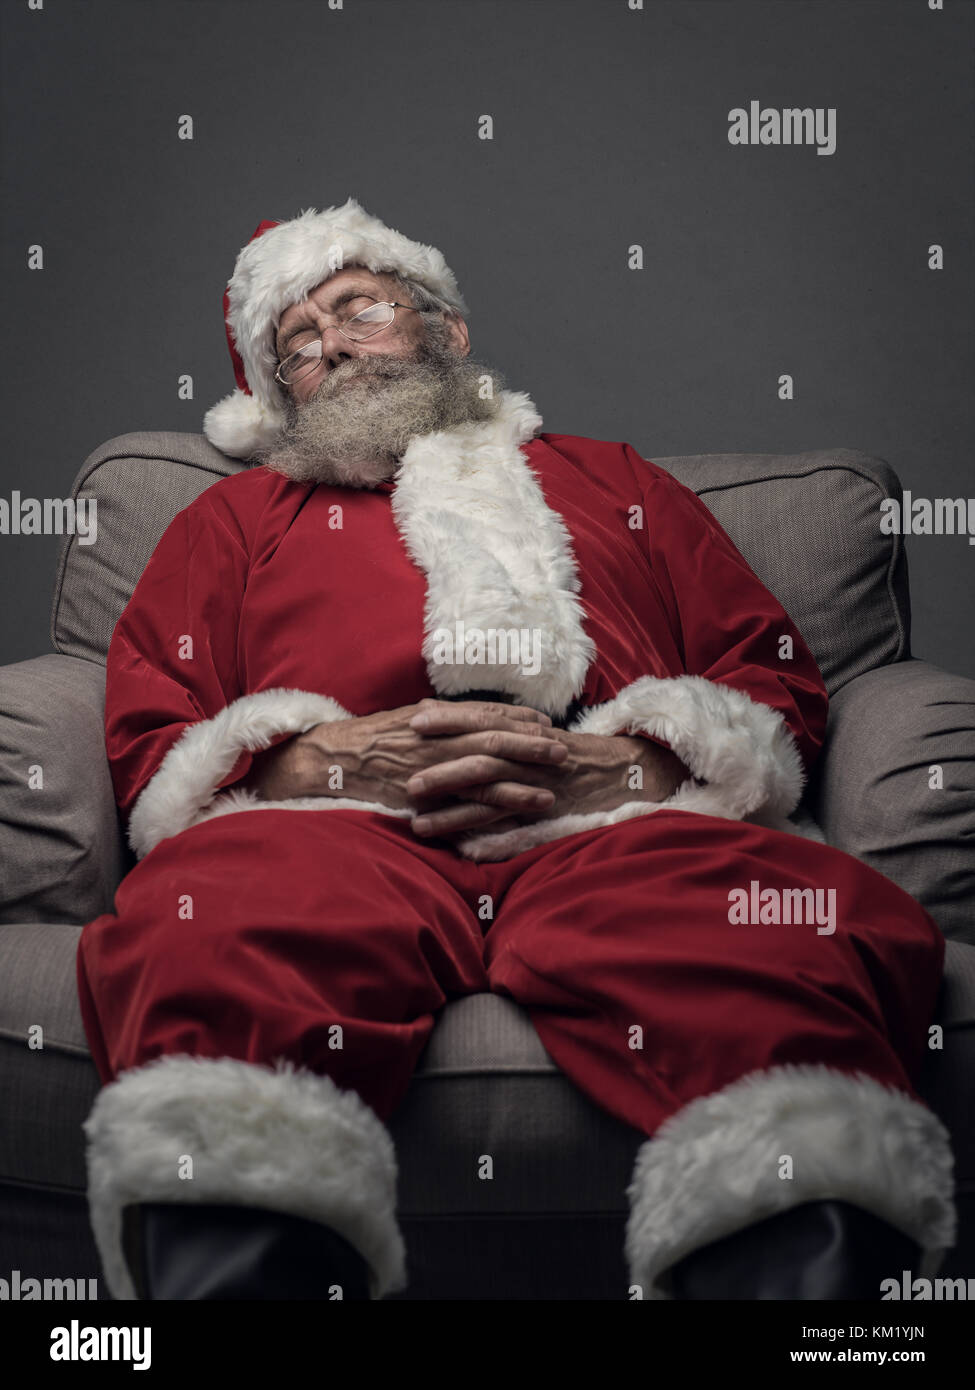 Sleepy Santa Claus taking a nap and relaxing on the armchair on Christmas Eve - Stock Image